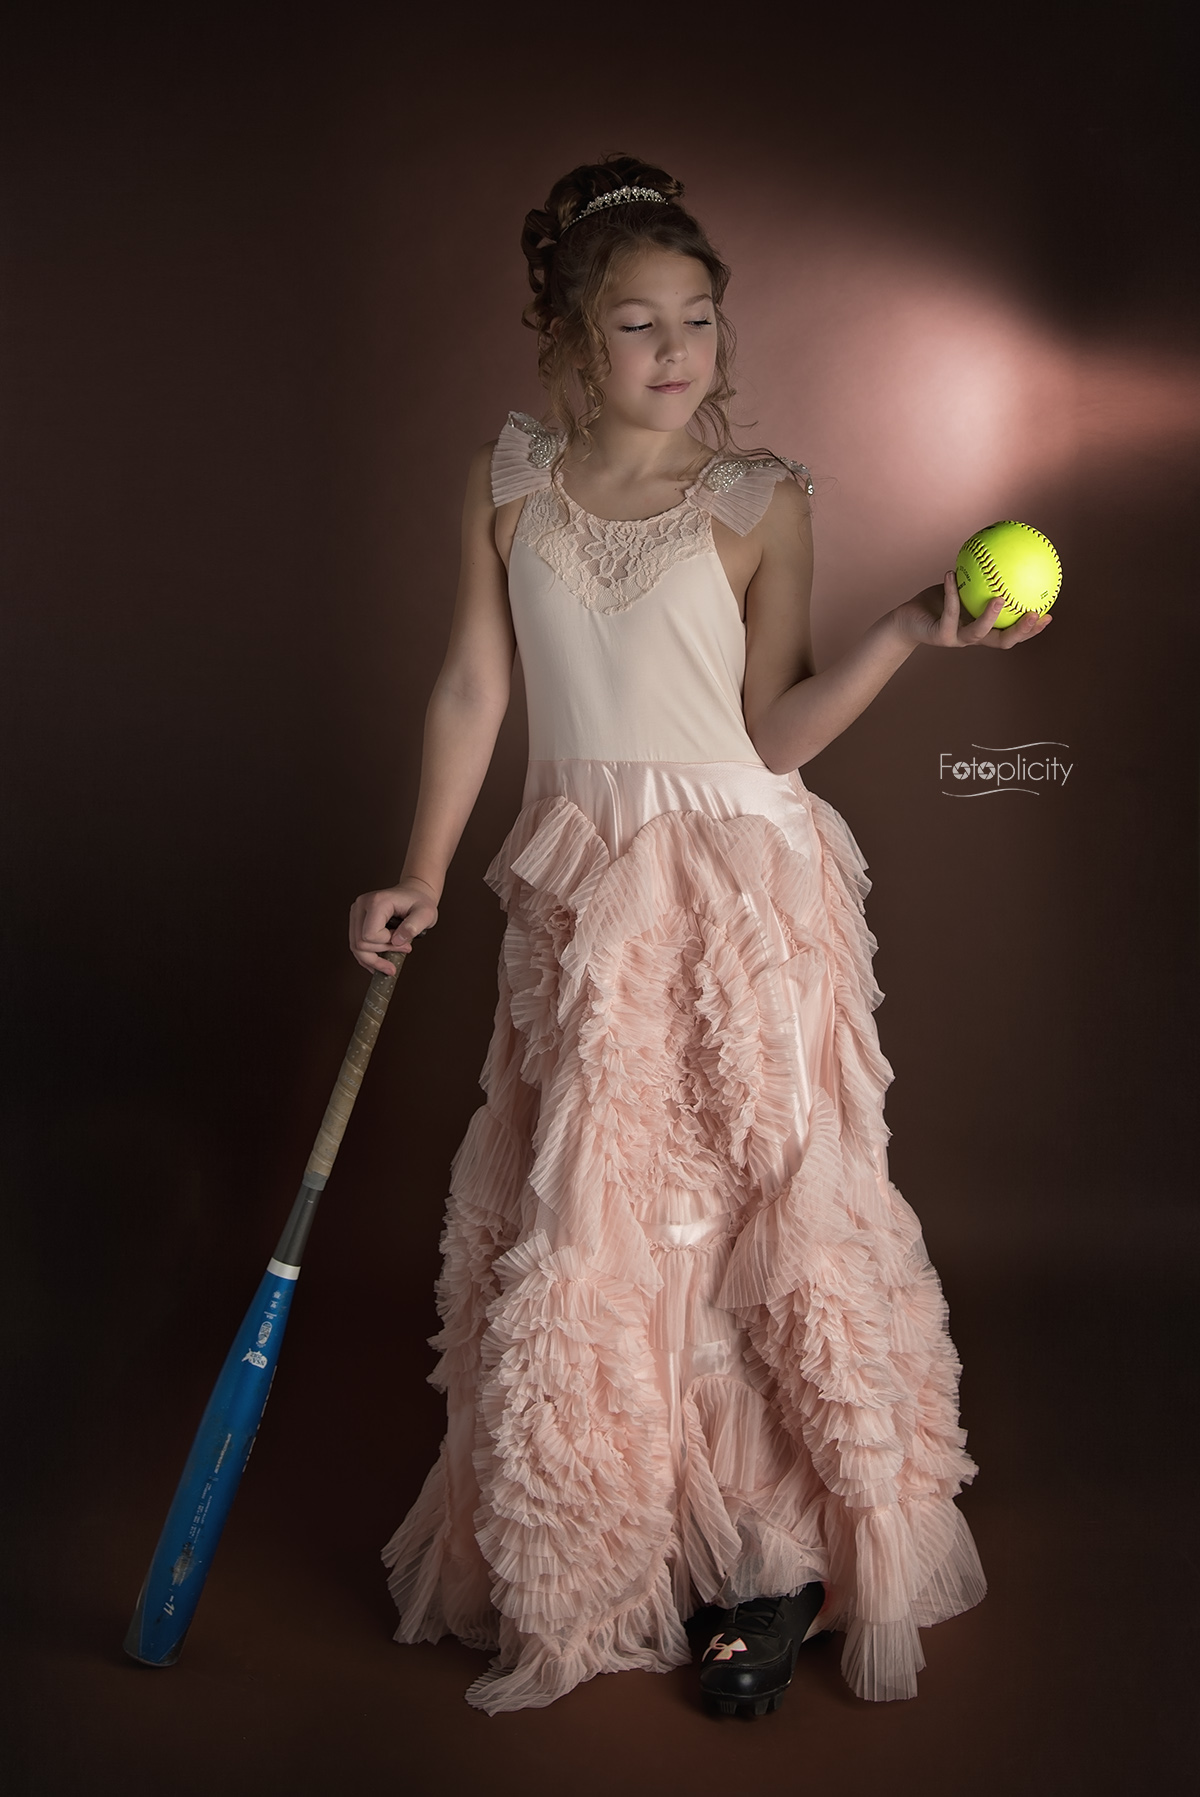 SoftballPrincess1WM